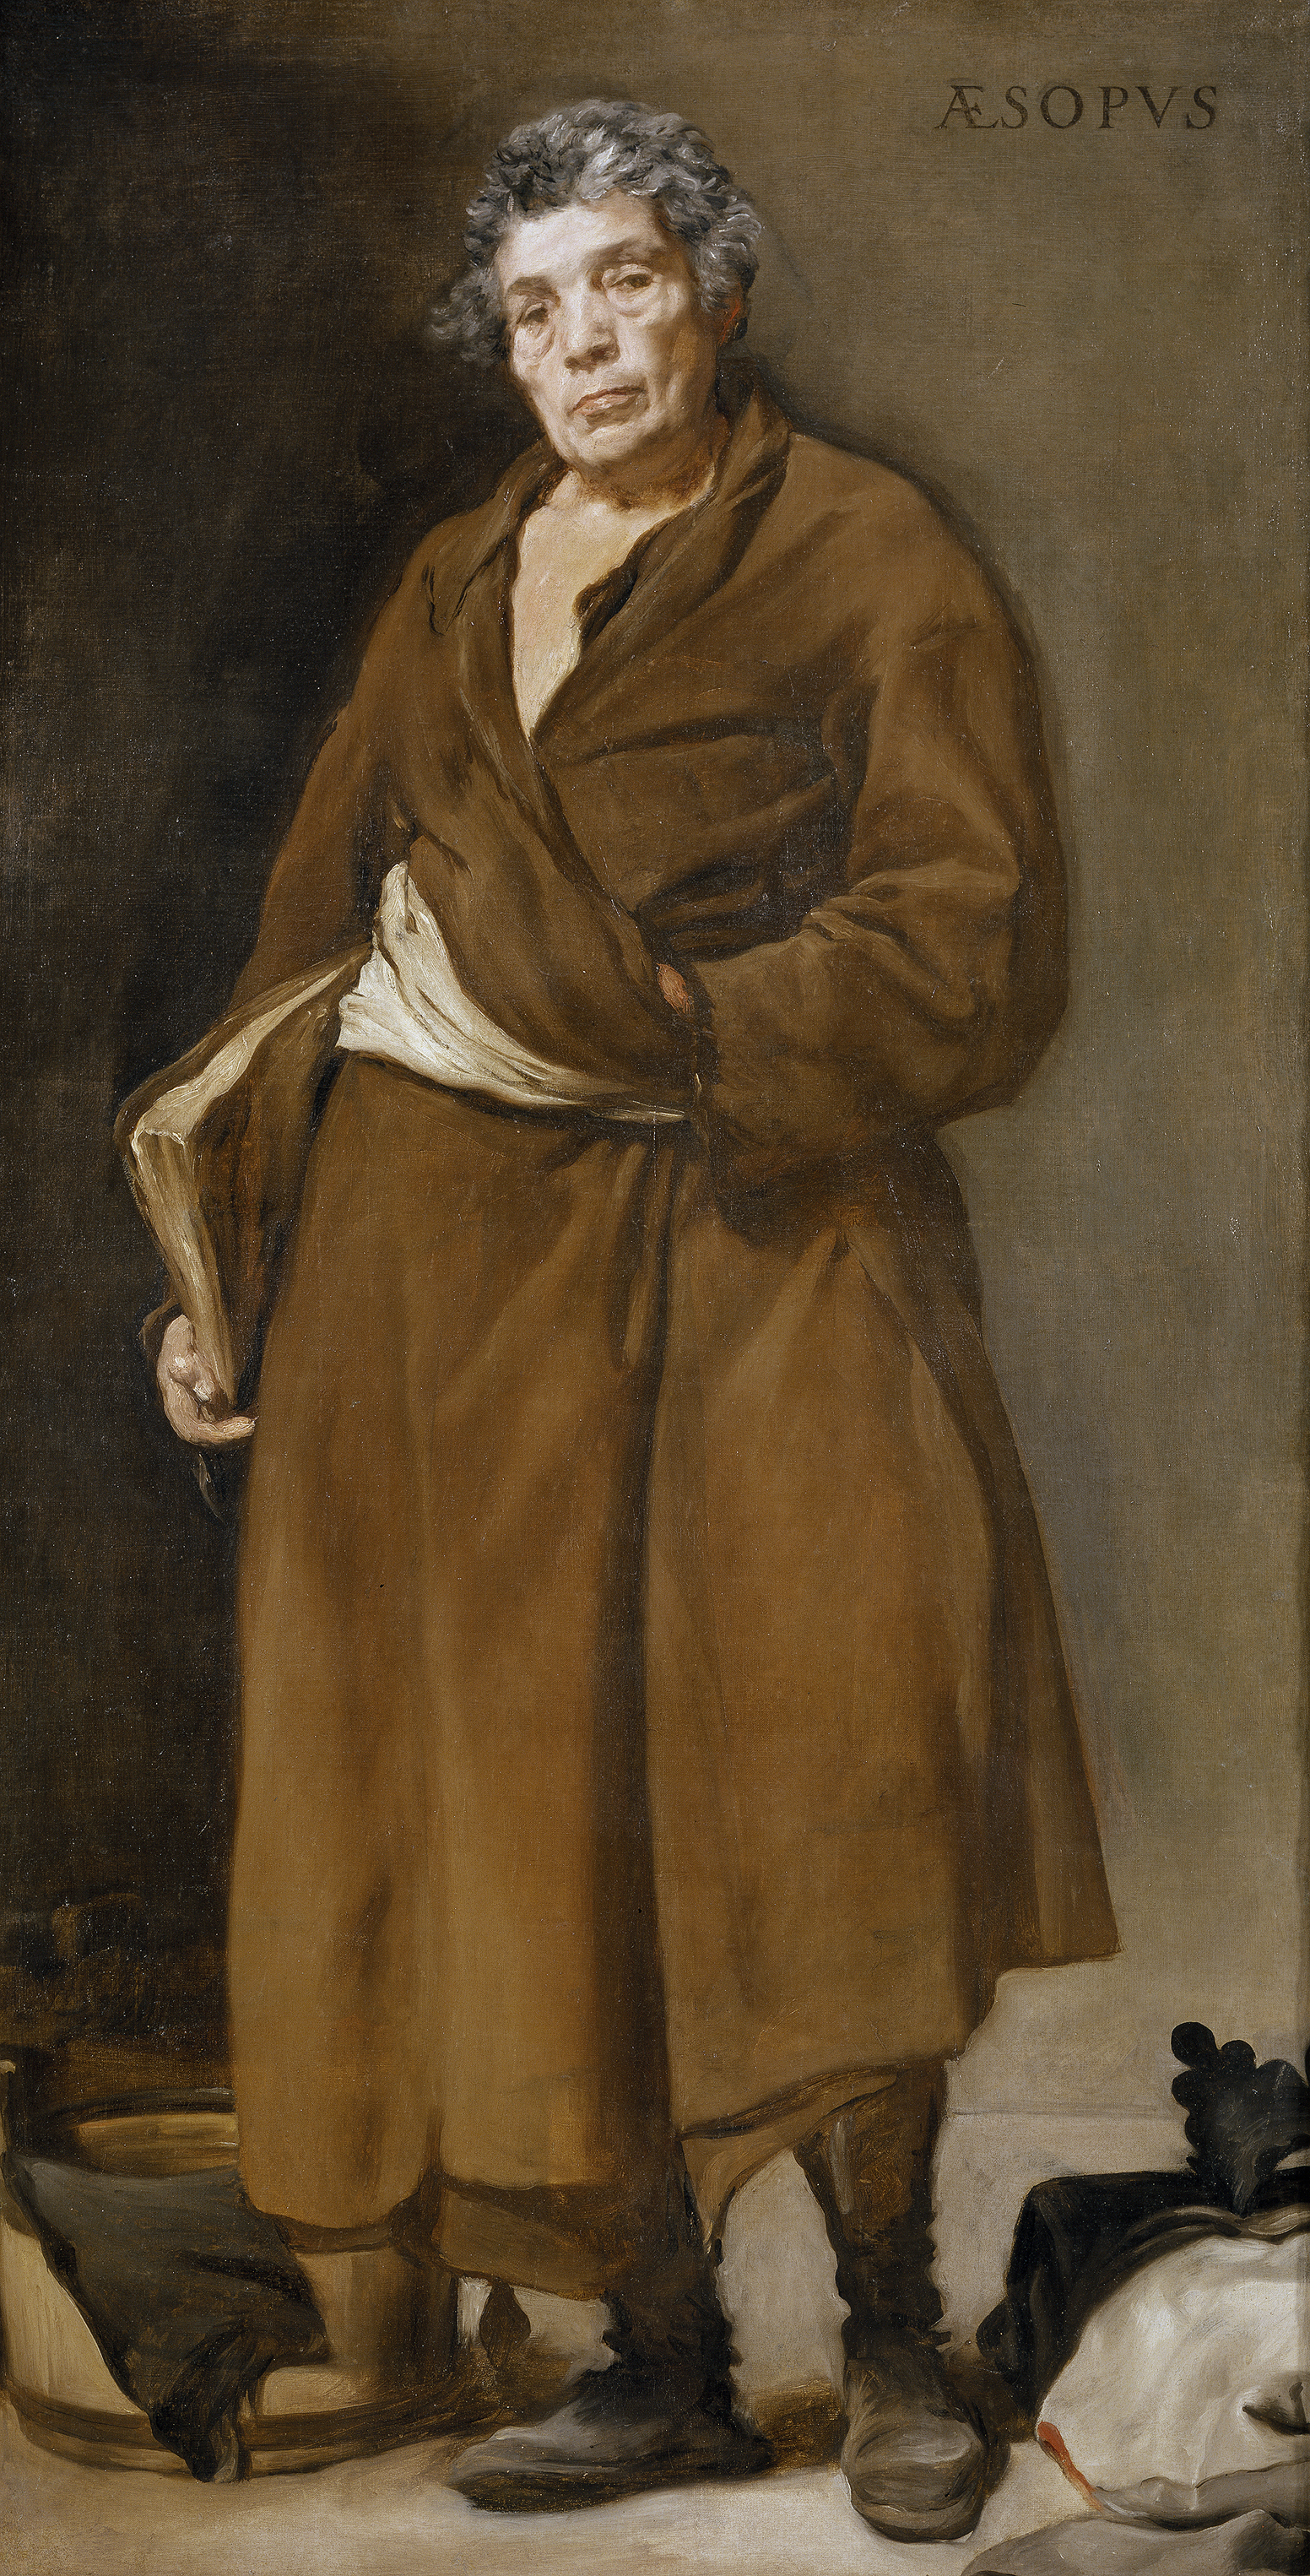 Portrait of Aesop by Velázquez in the Prado. Public Domain. Velázquez - Esopo (Museo del Prado, 1639-41).jpg